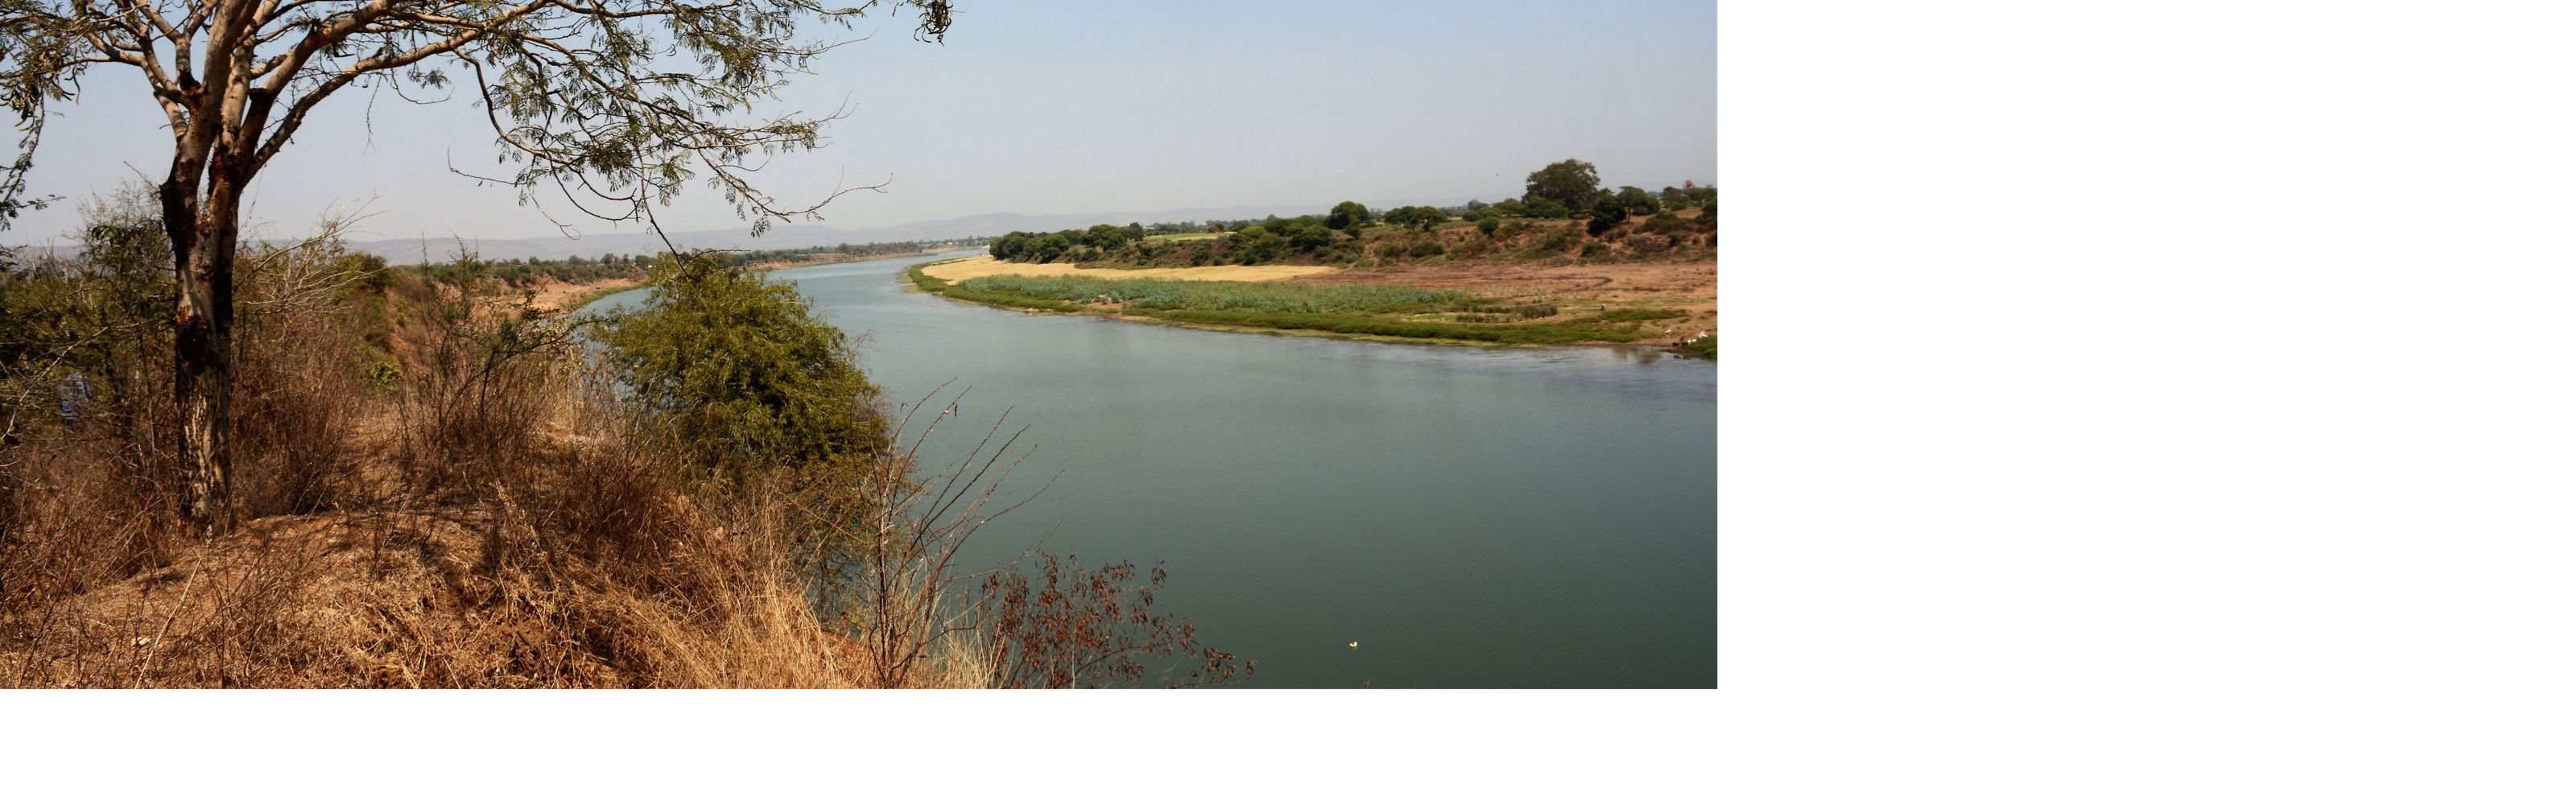 The Narmada River in Central India supports more than 25 million people and unique wildlife like the tiger, leopard and several species of deer.